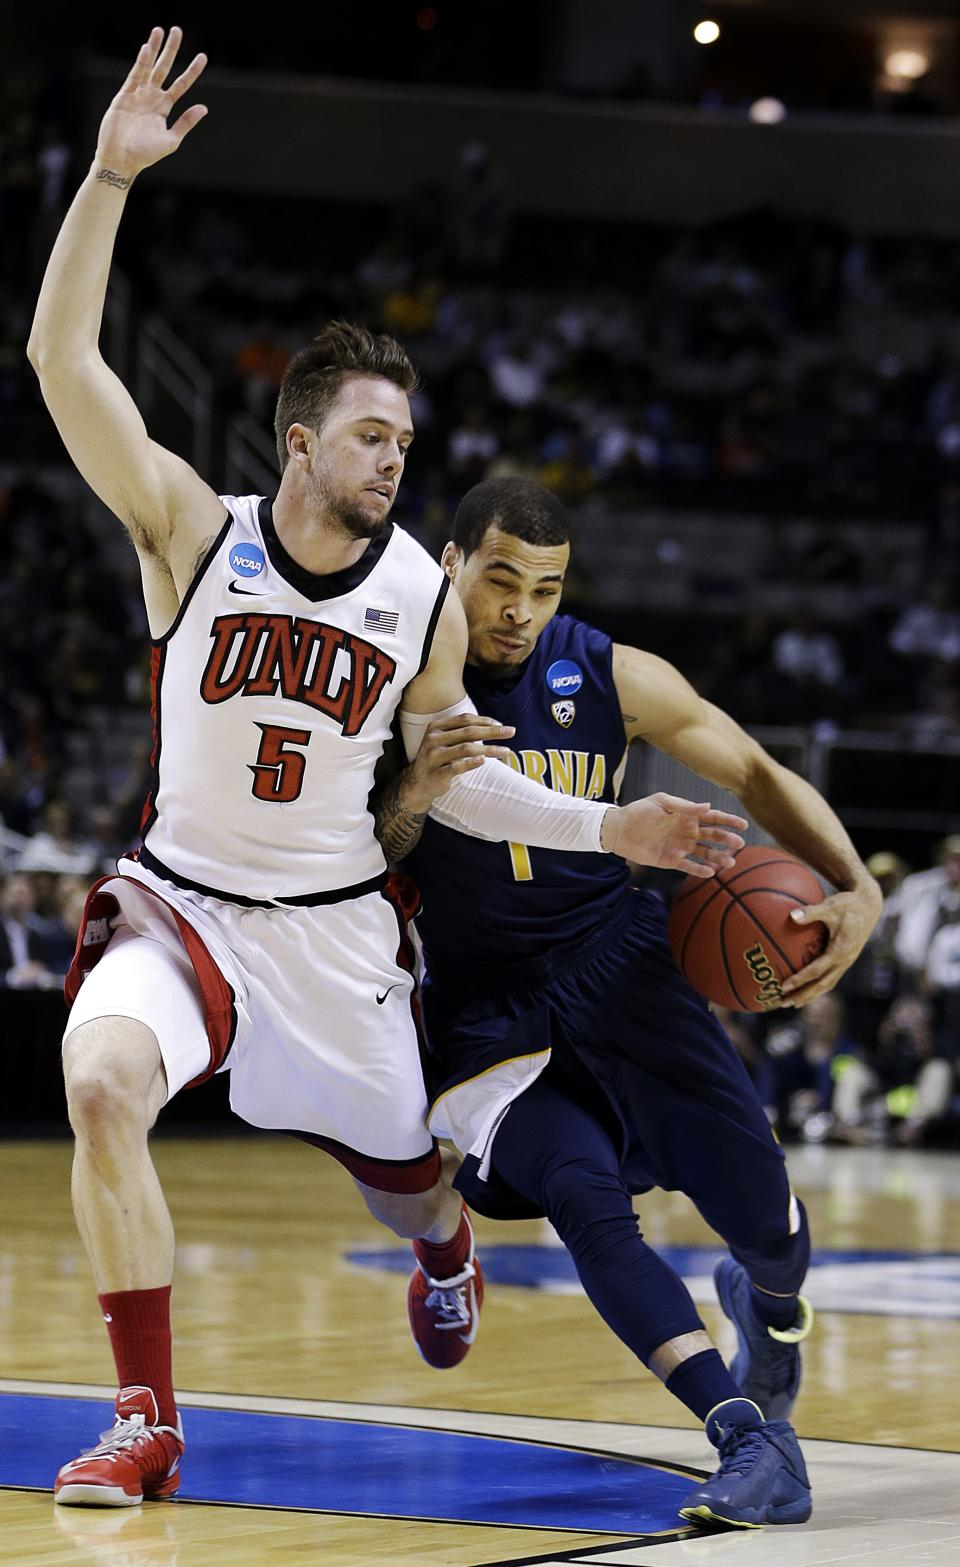 California guard Justin Cobbs, right, drives on UNLV guard Katin Reinhardt (5) during the first half of a second-round game in the NCAA college basketball tournament in San Jose, Calif., Thursday, March 21, 2013. (AP Photo/Ben Margot)